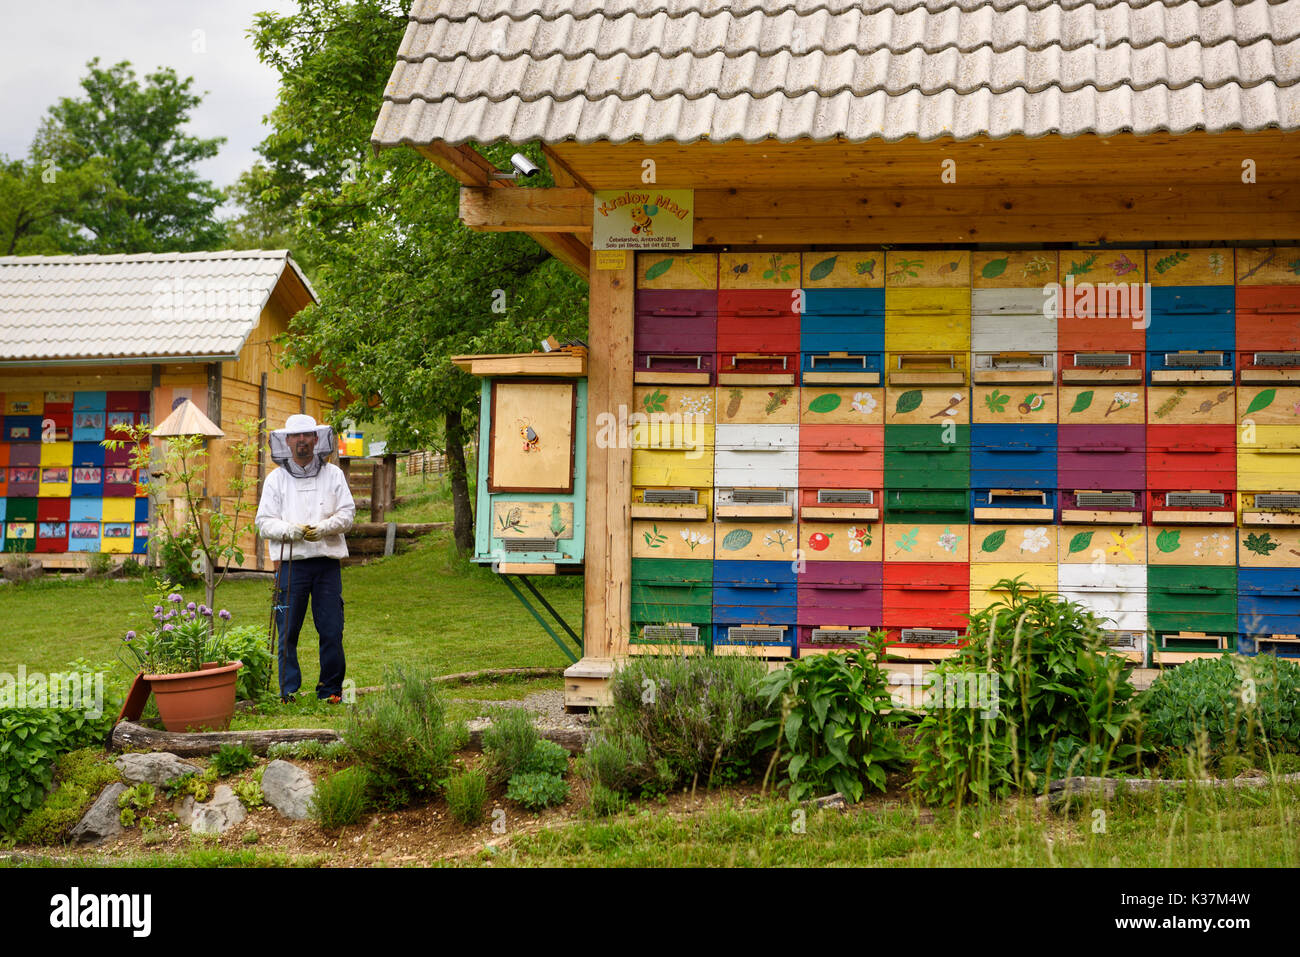 Local beekeeper Blaz Ambrozic with colorful traditionally painted apiary beehive houses at Kralov Med in Selo near Bled Slovenia in Spring - Stock Image